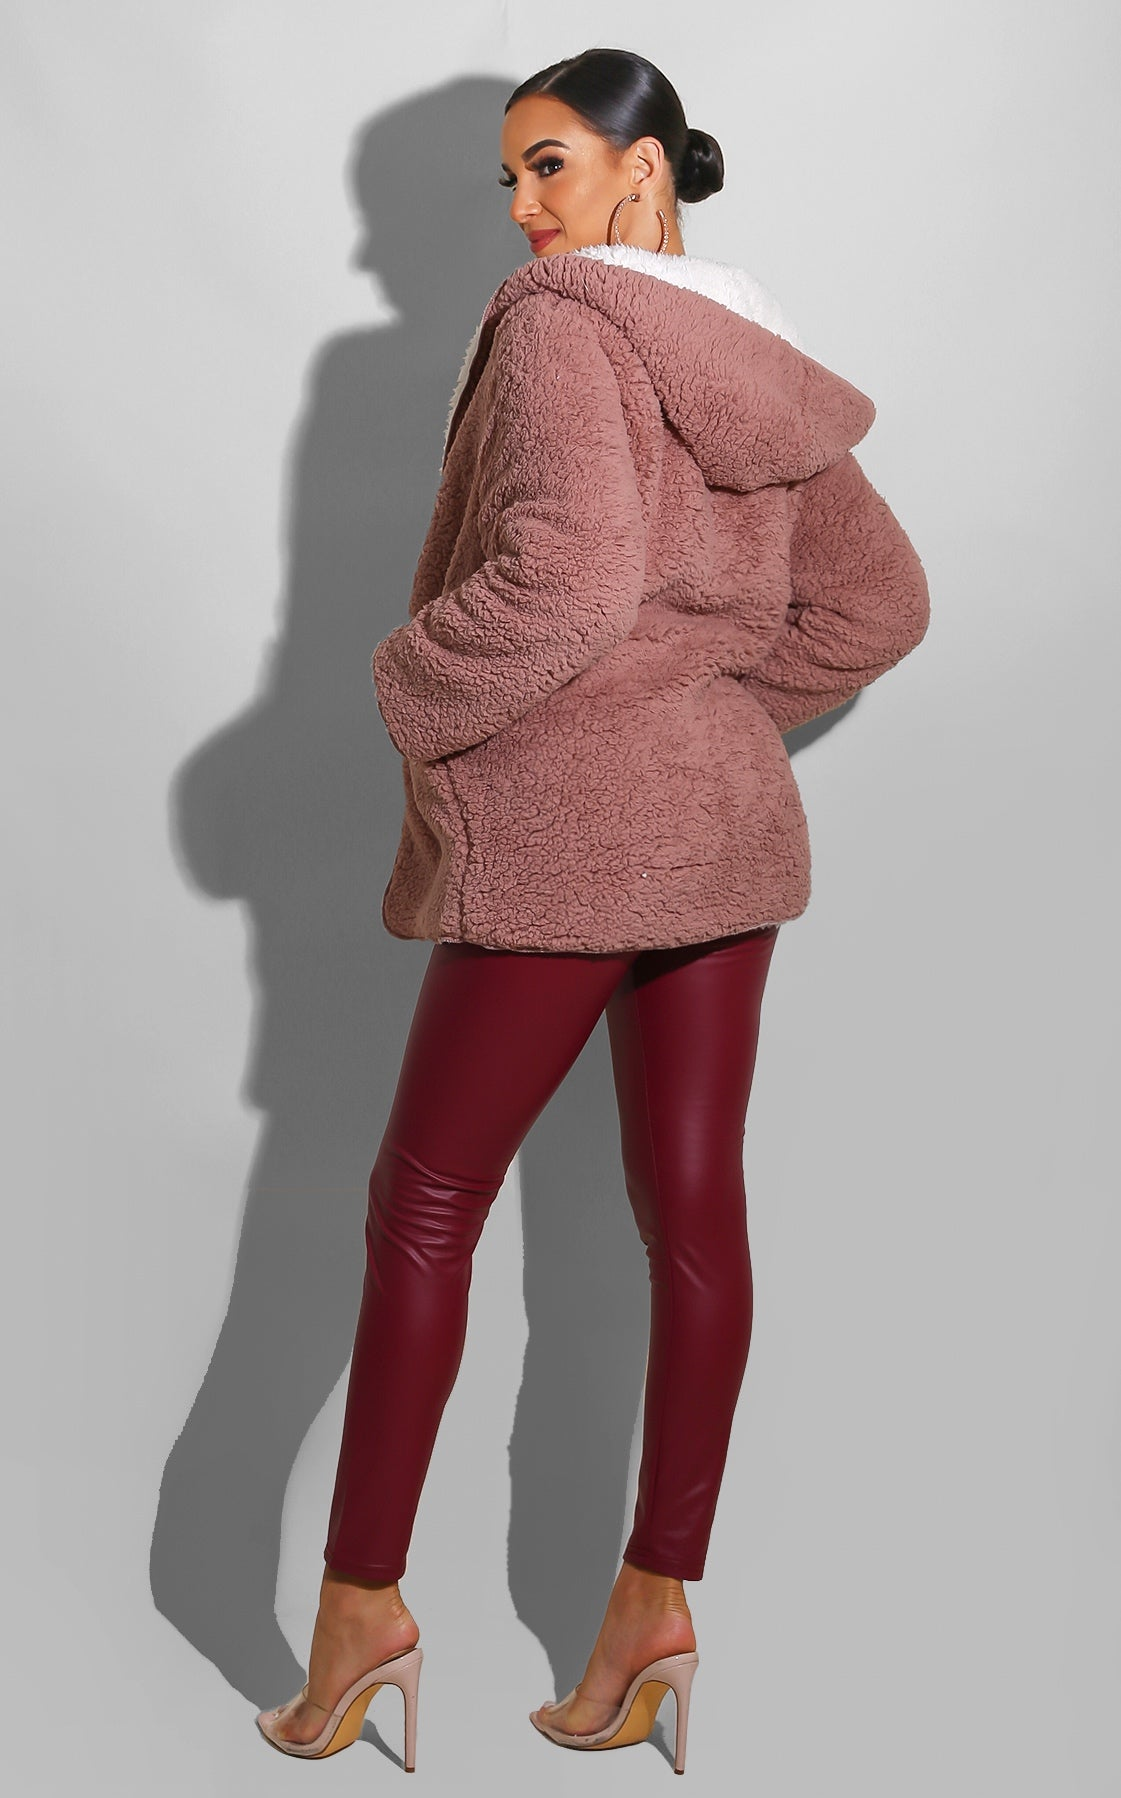 Liquid Pleather Leggings Burgundy